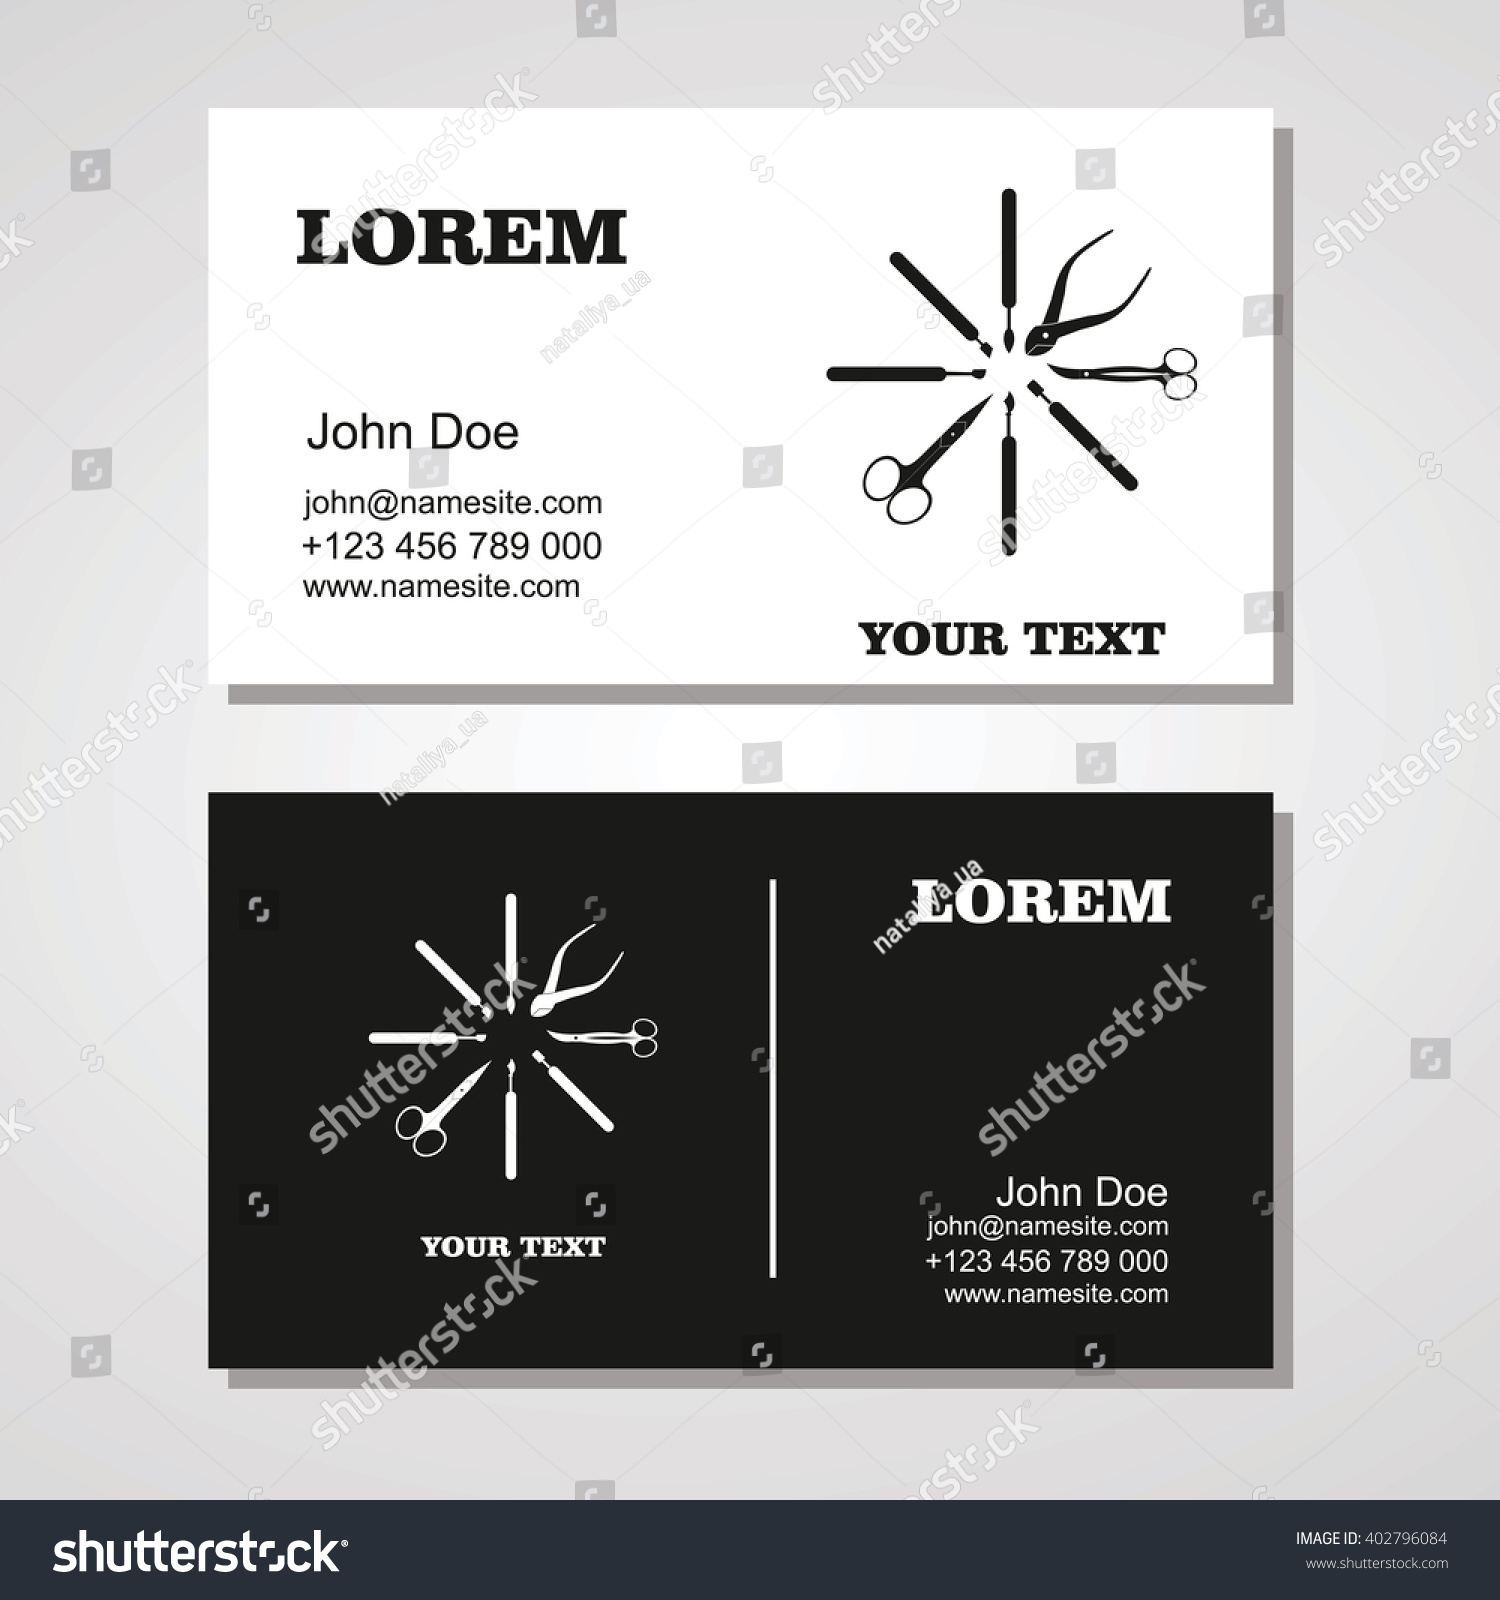 Manicure salon business card design templates stock vector royalty manicure salon business card design templates setauty business card templatet of business friedricerecipe Images